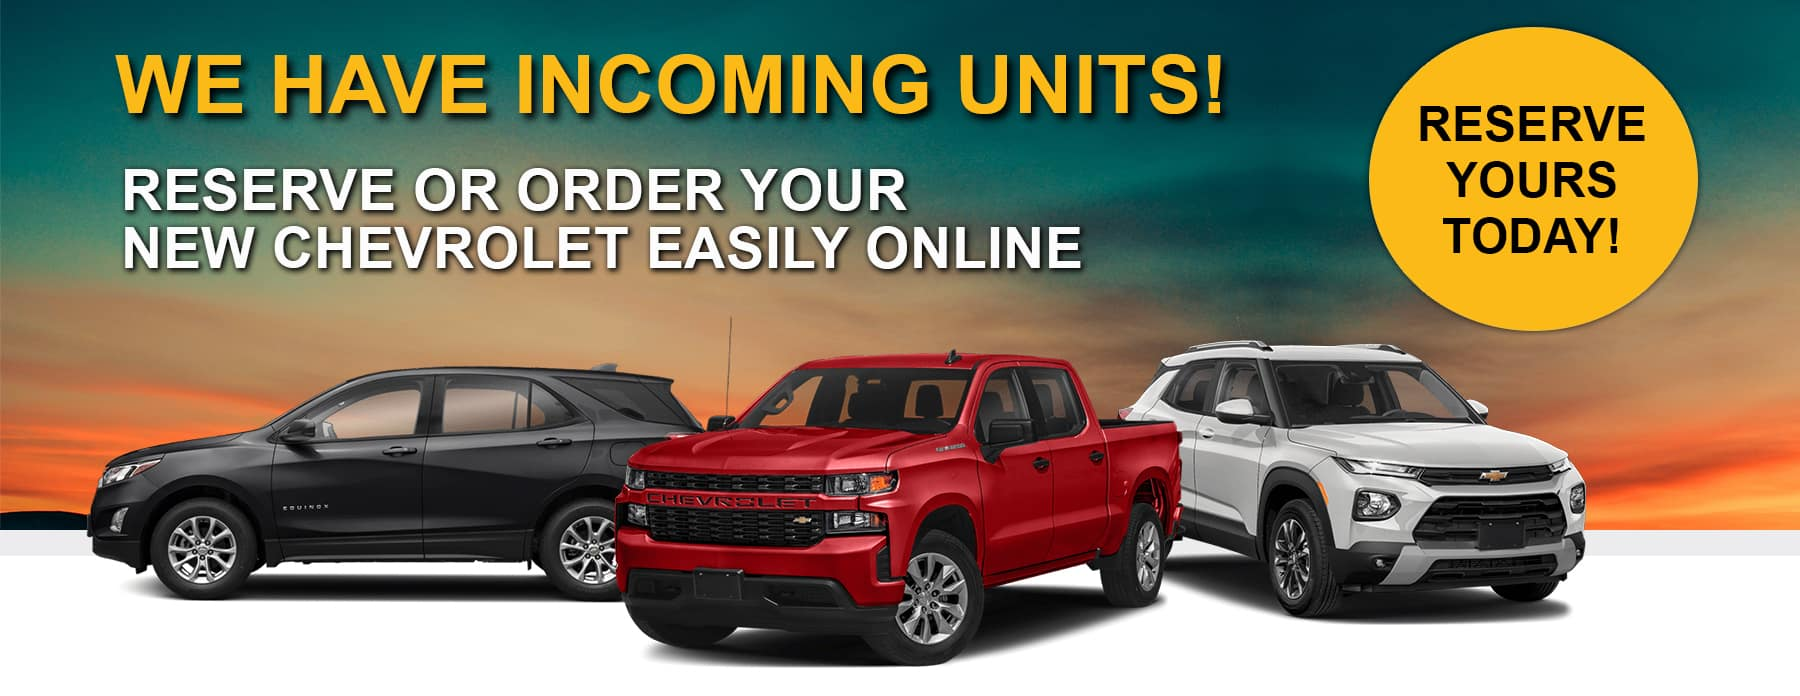 RESERVE YOUR NEXT CHEVY BANNER copy